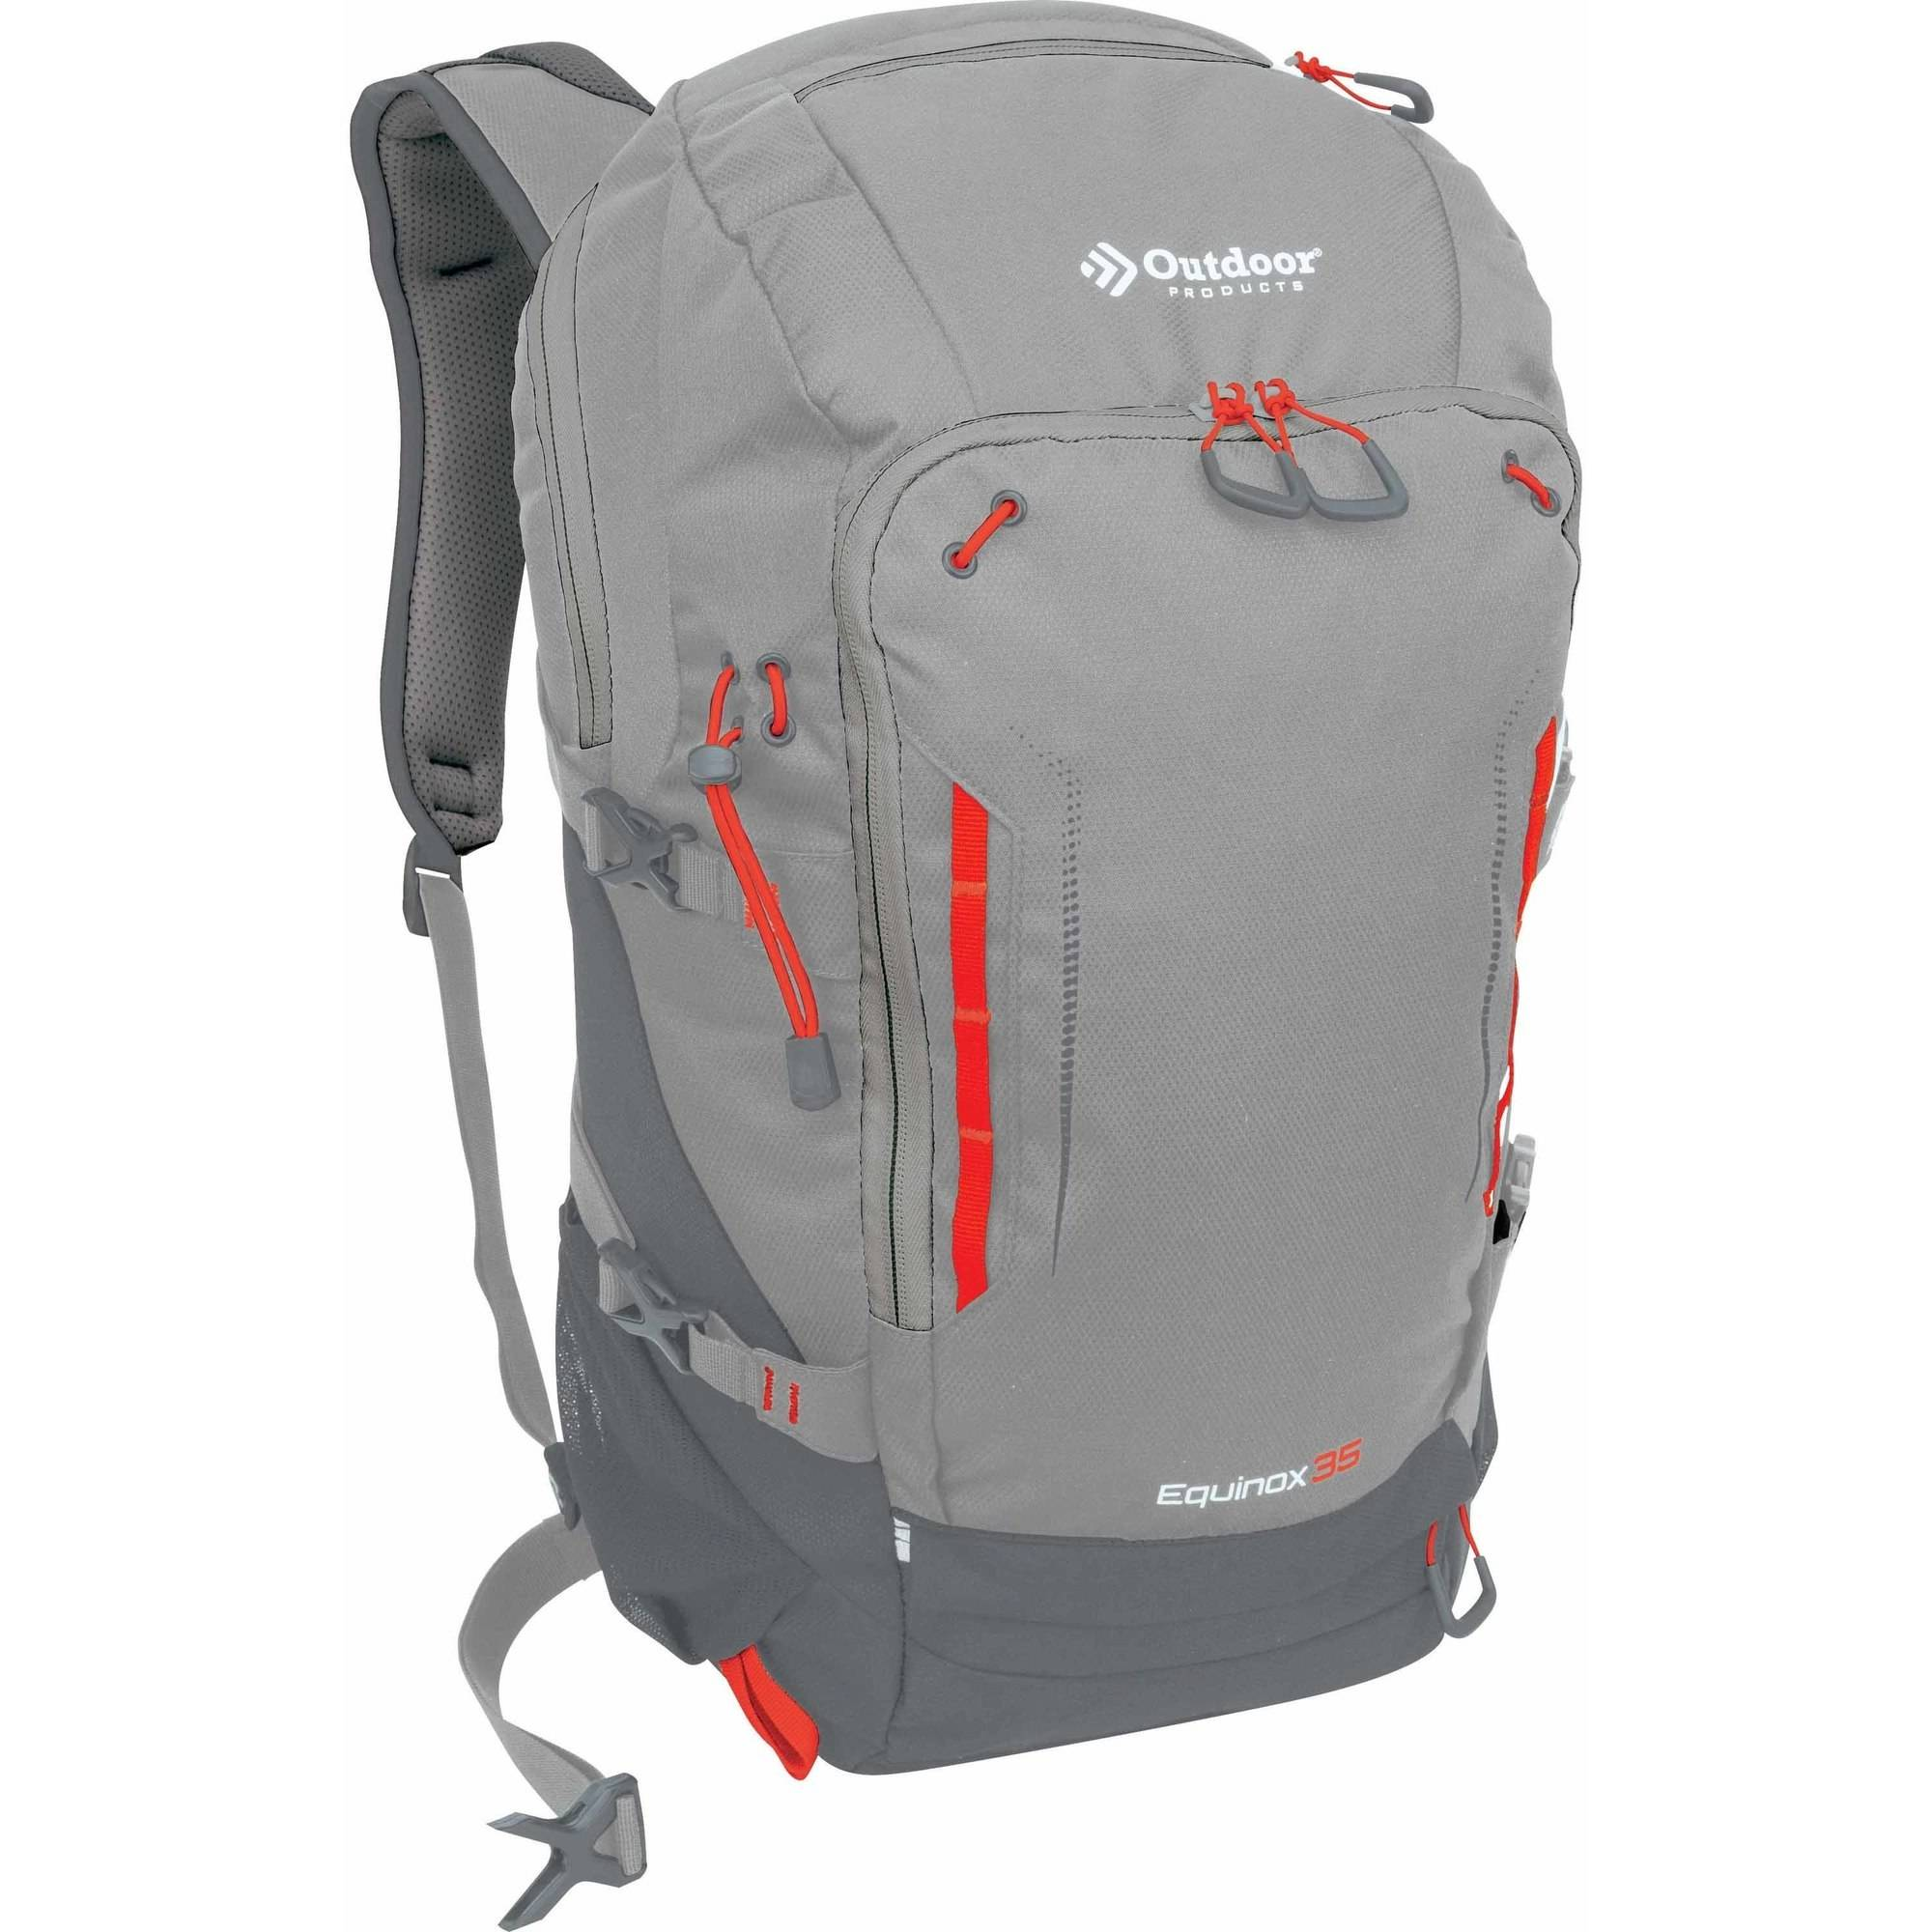 Outdoor Products Equinox Internal Frame Backpack for Camping, Hiking, Travel Pack